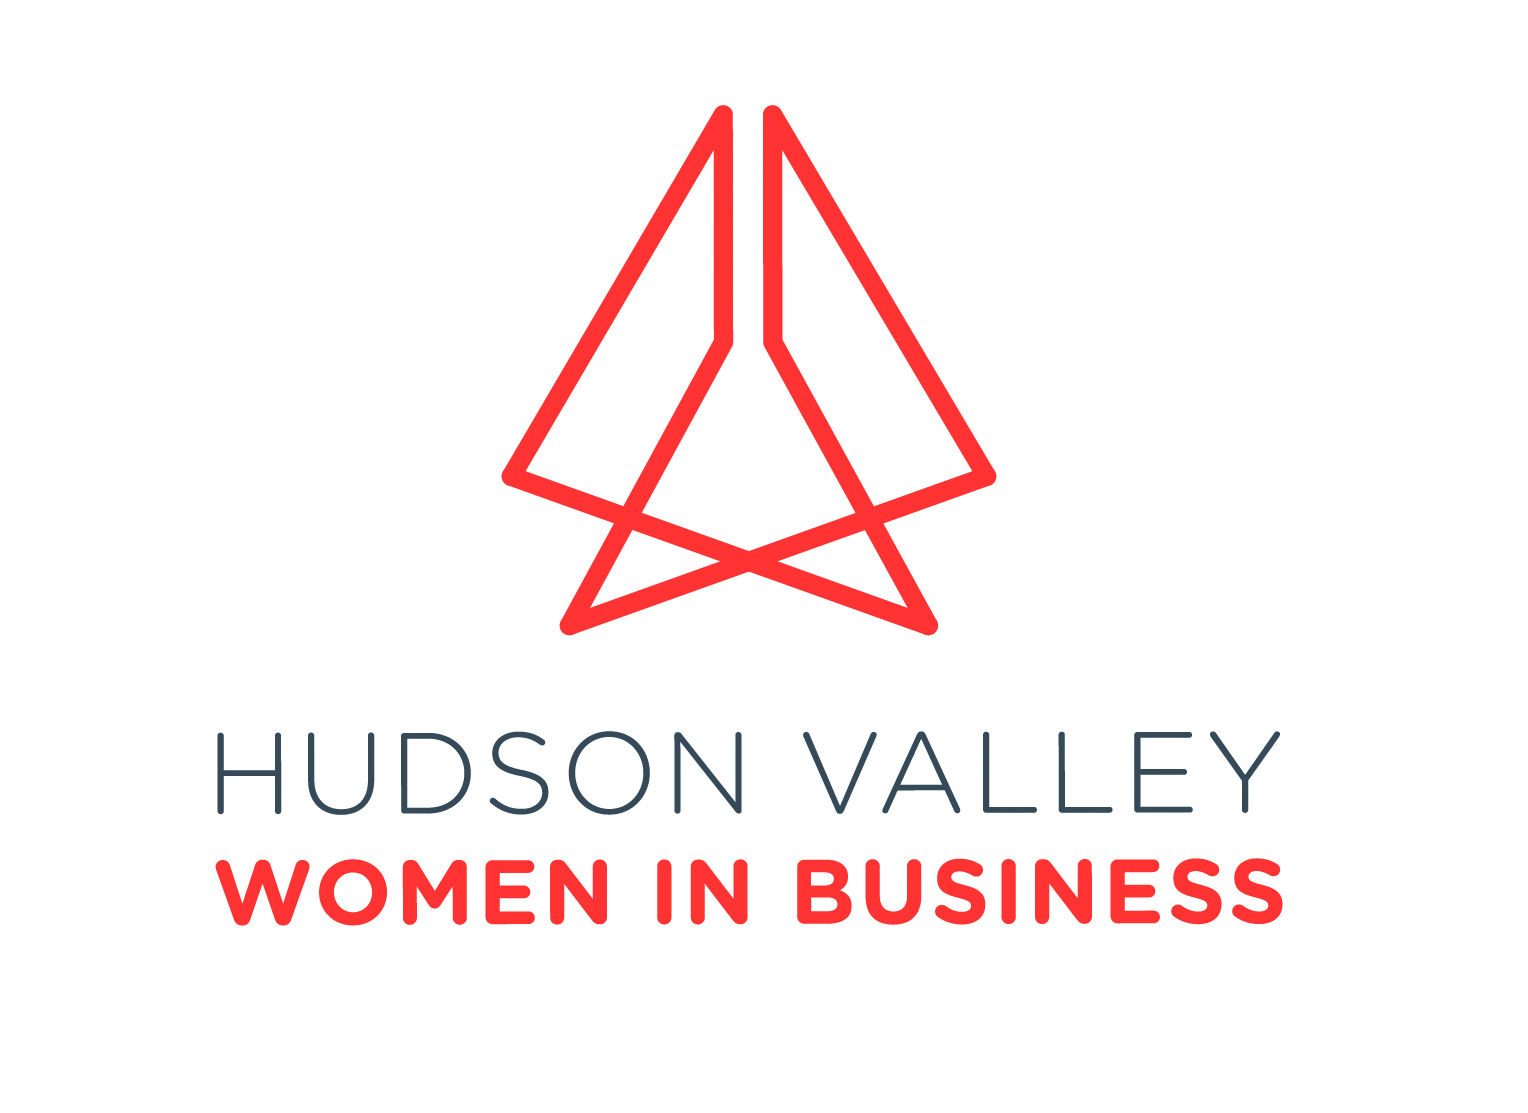 Hudson Valley Women in Business